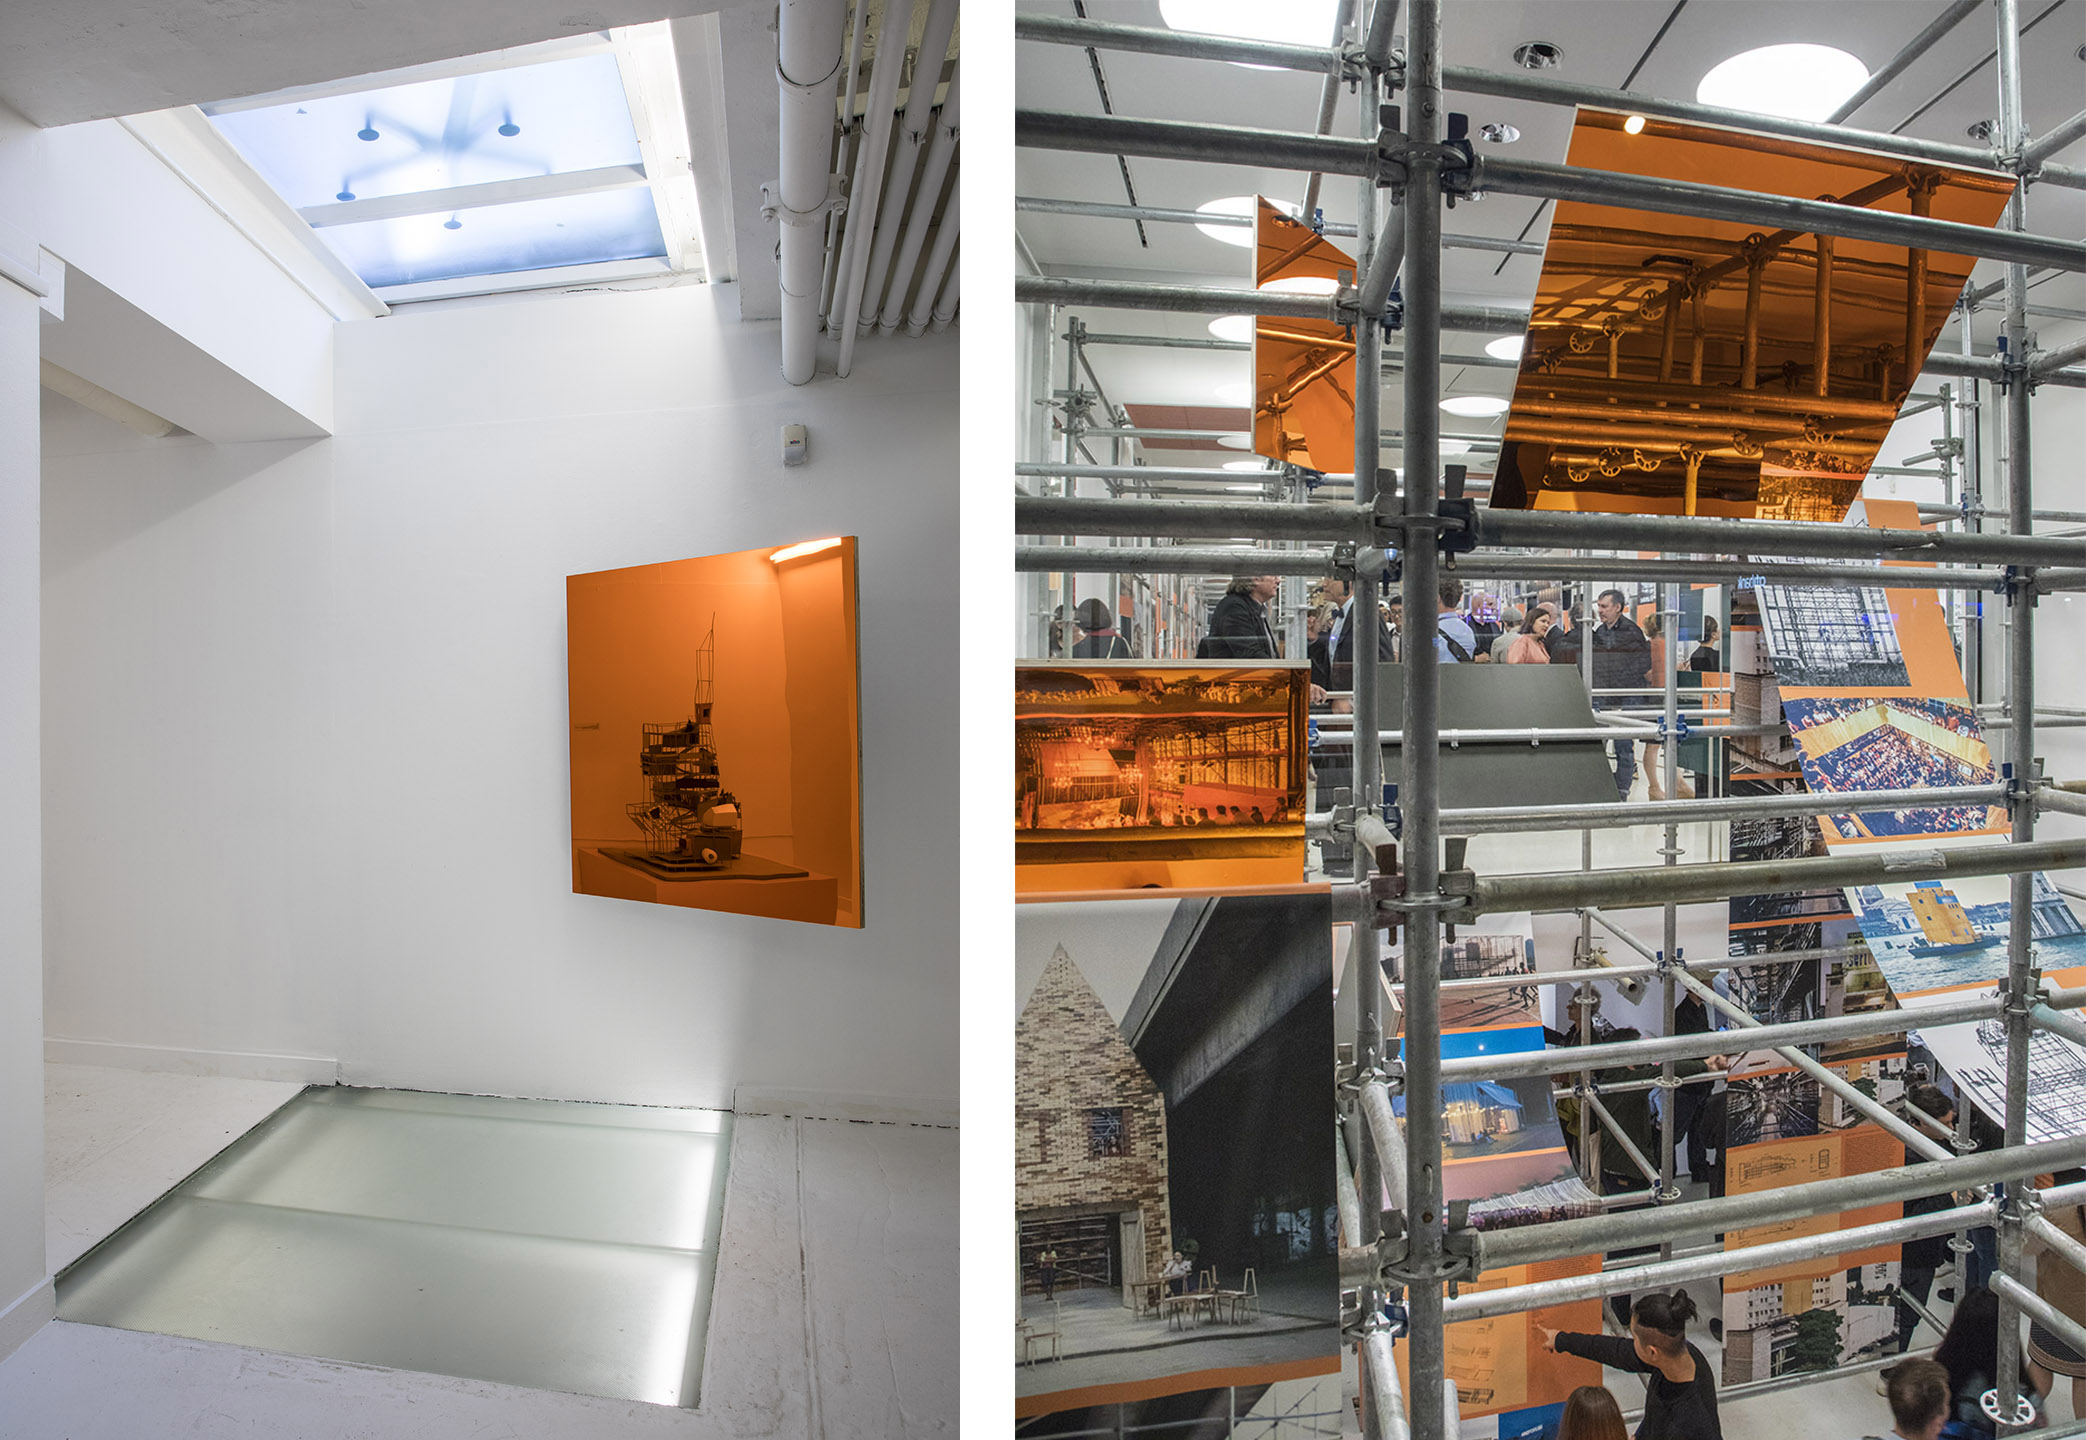 10-OMA-Scaffolding-Exhibit_Side-Gallery-View_Photography-by-Brett-Beyer